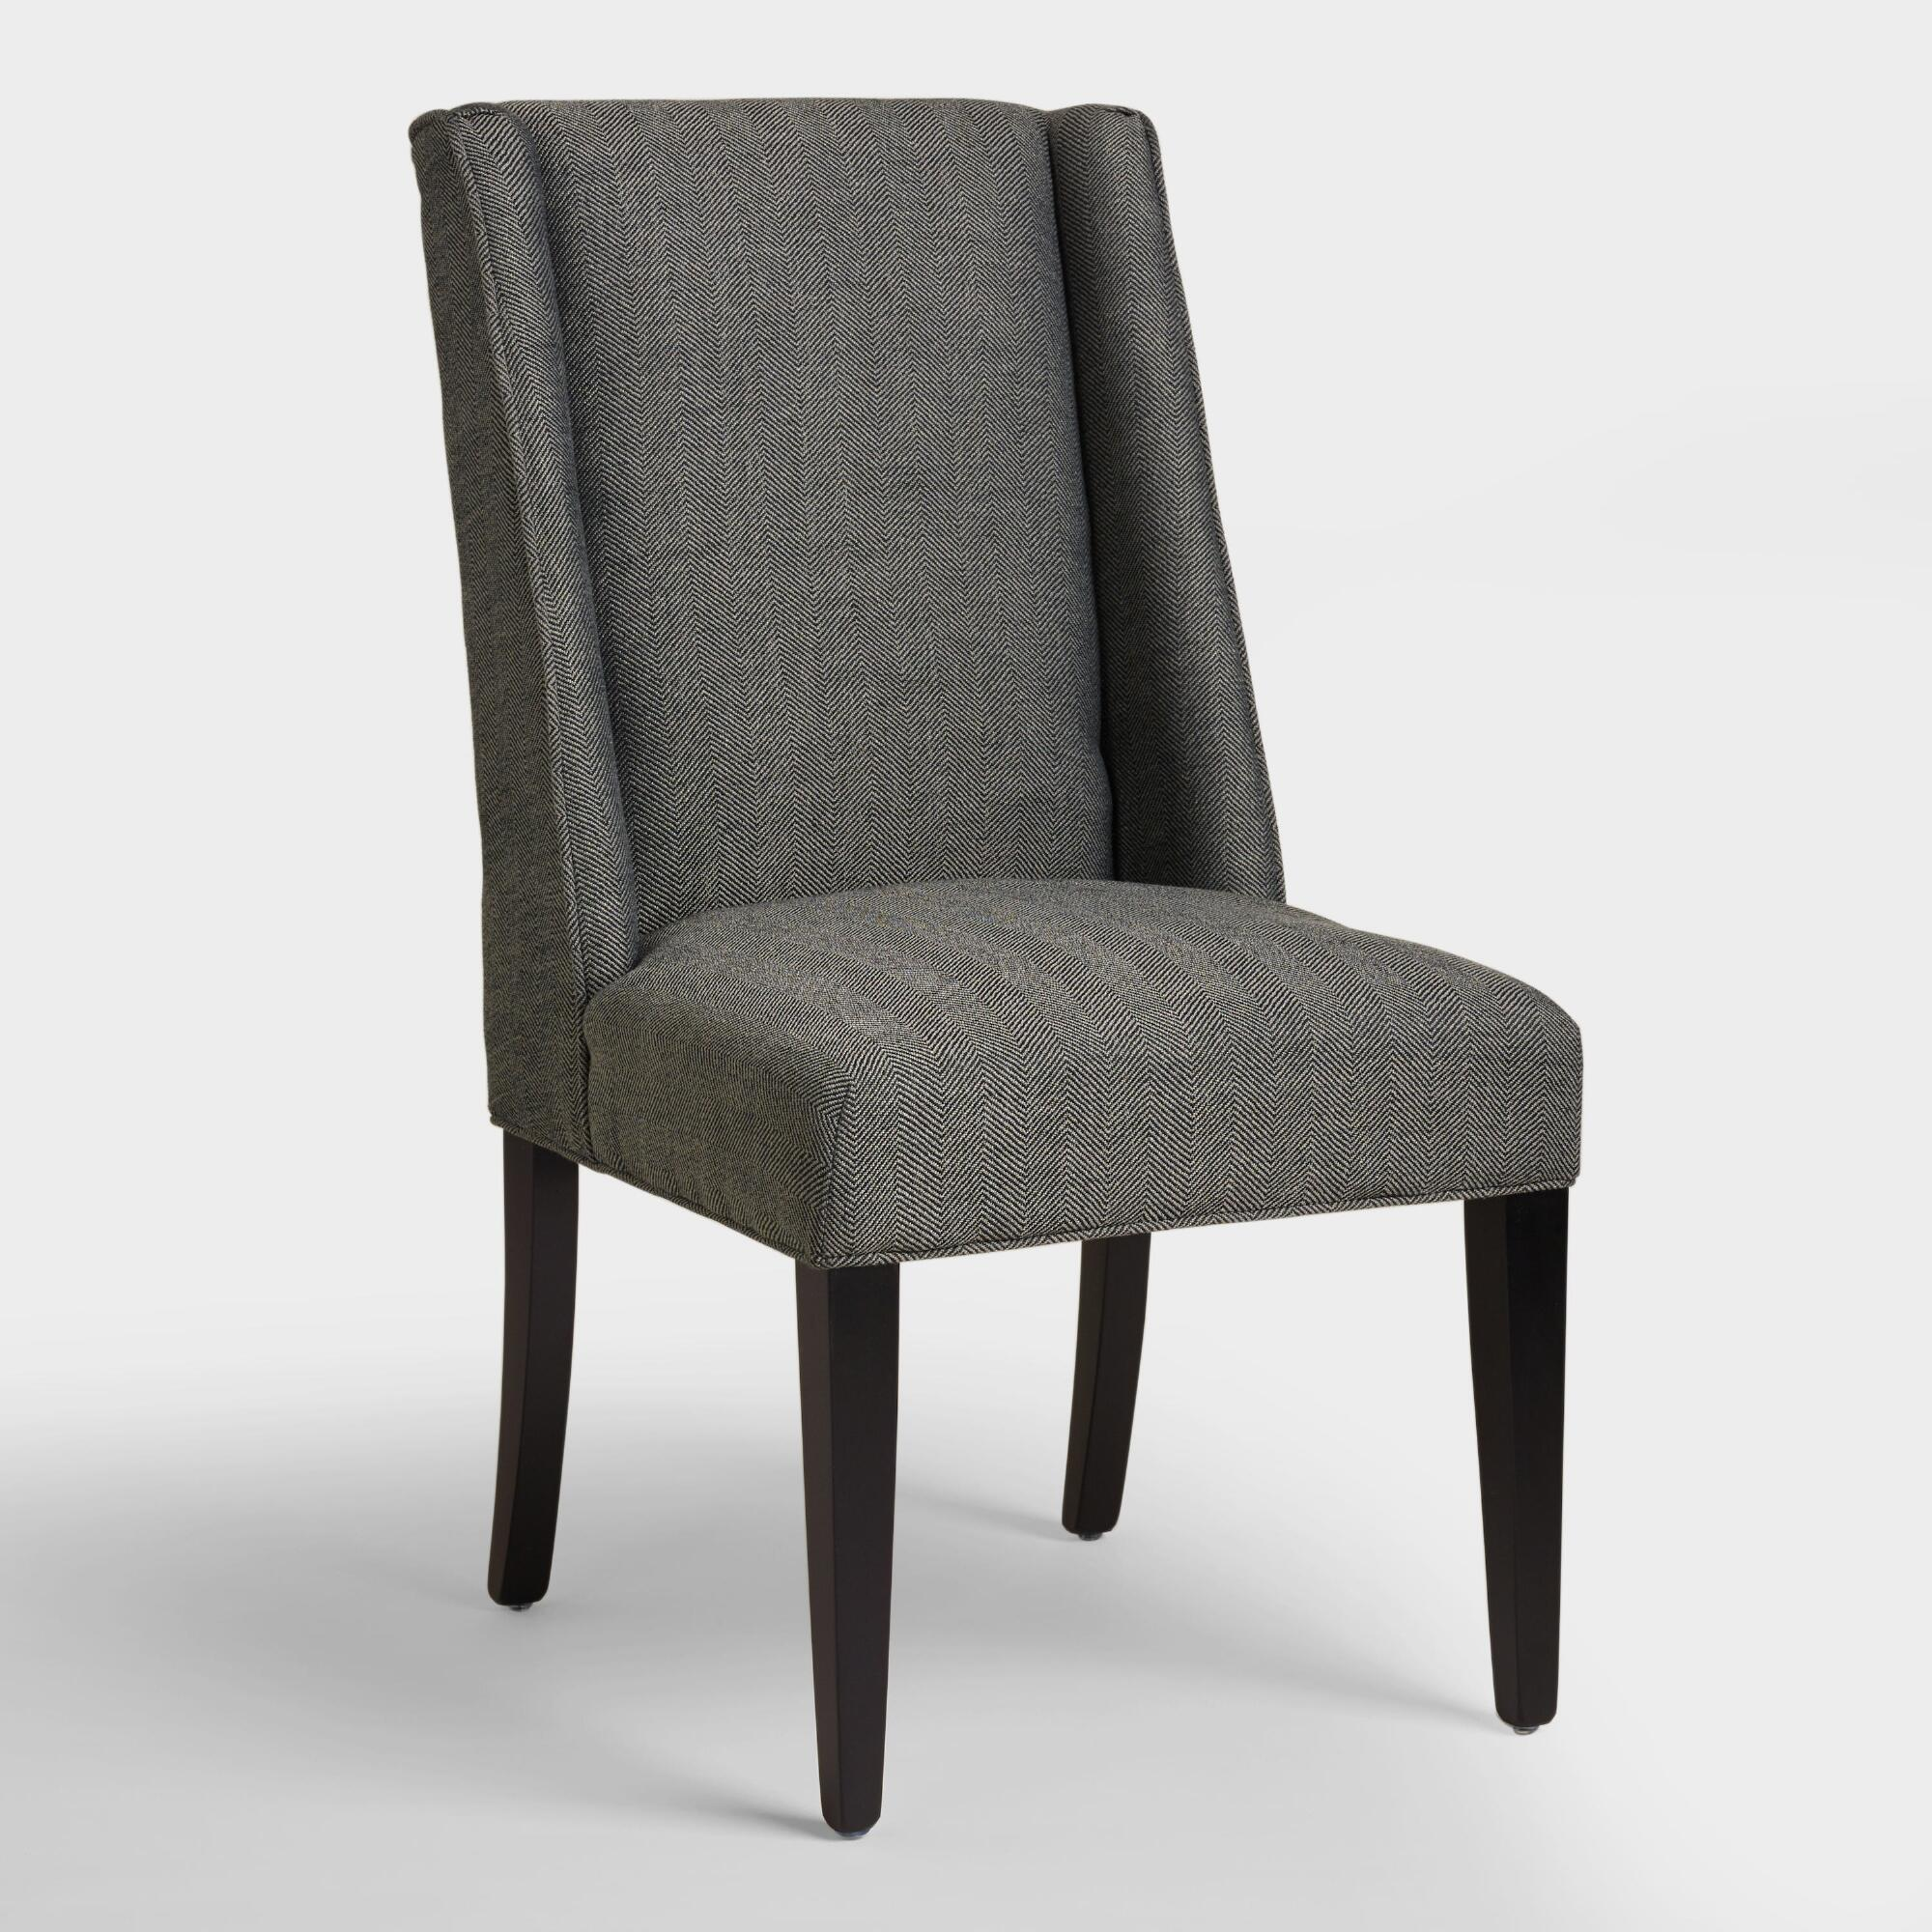 Sofa In Dining Room: Charcoal Herringbone Lawford Dining Chairs